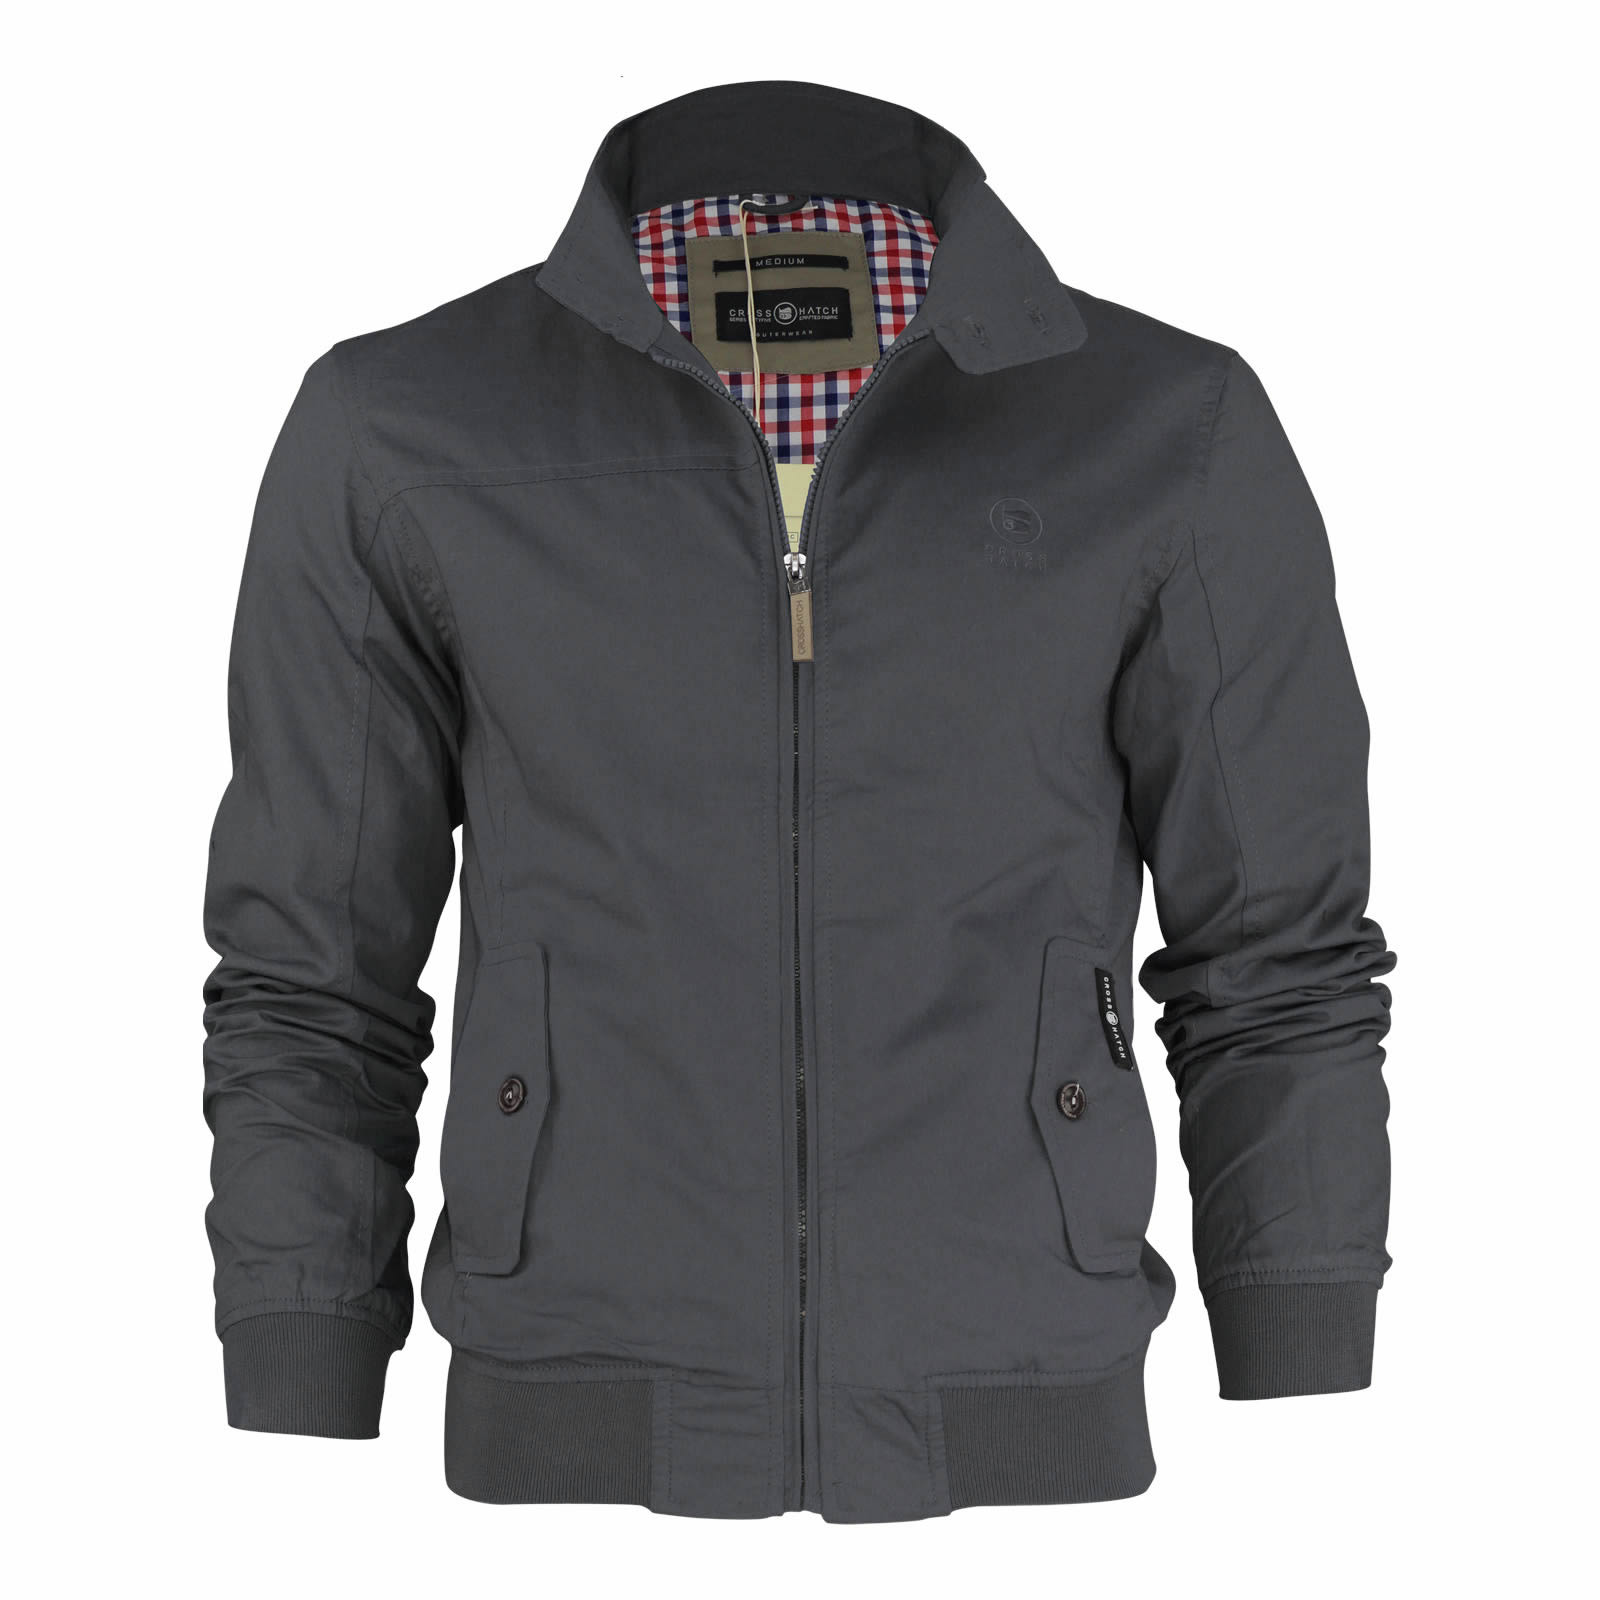 Bordeaux bomber jacket with stand up collar with knitted details